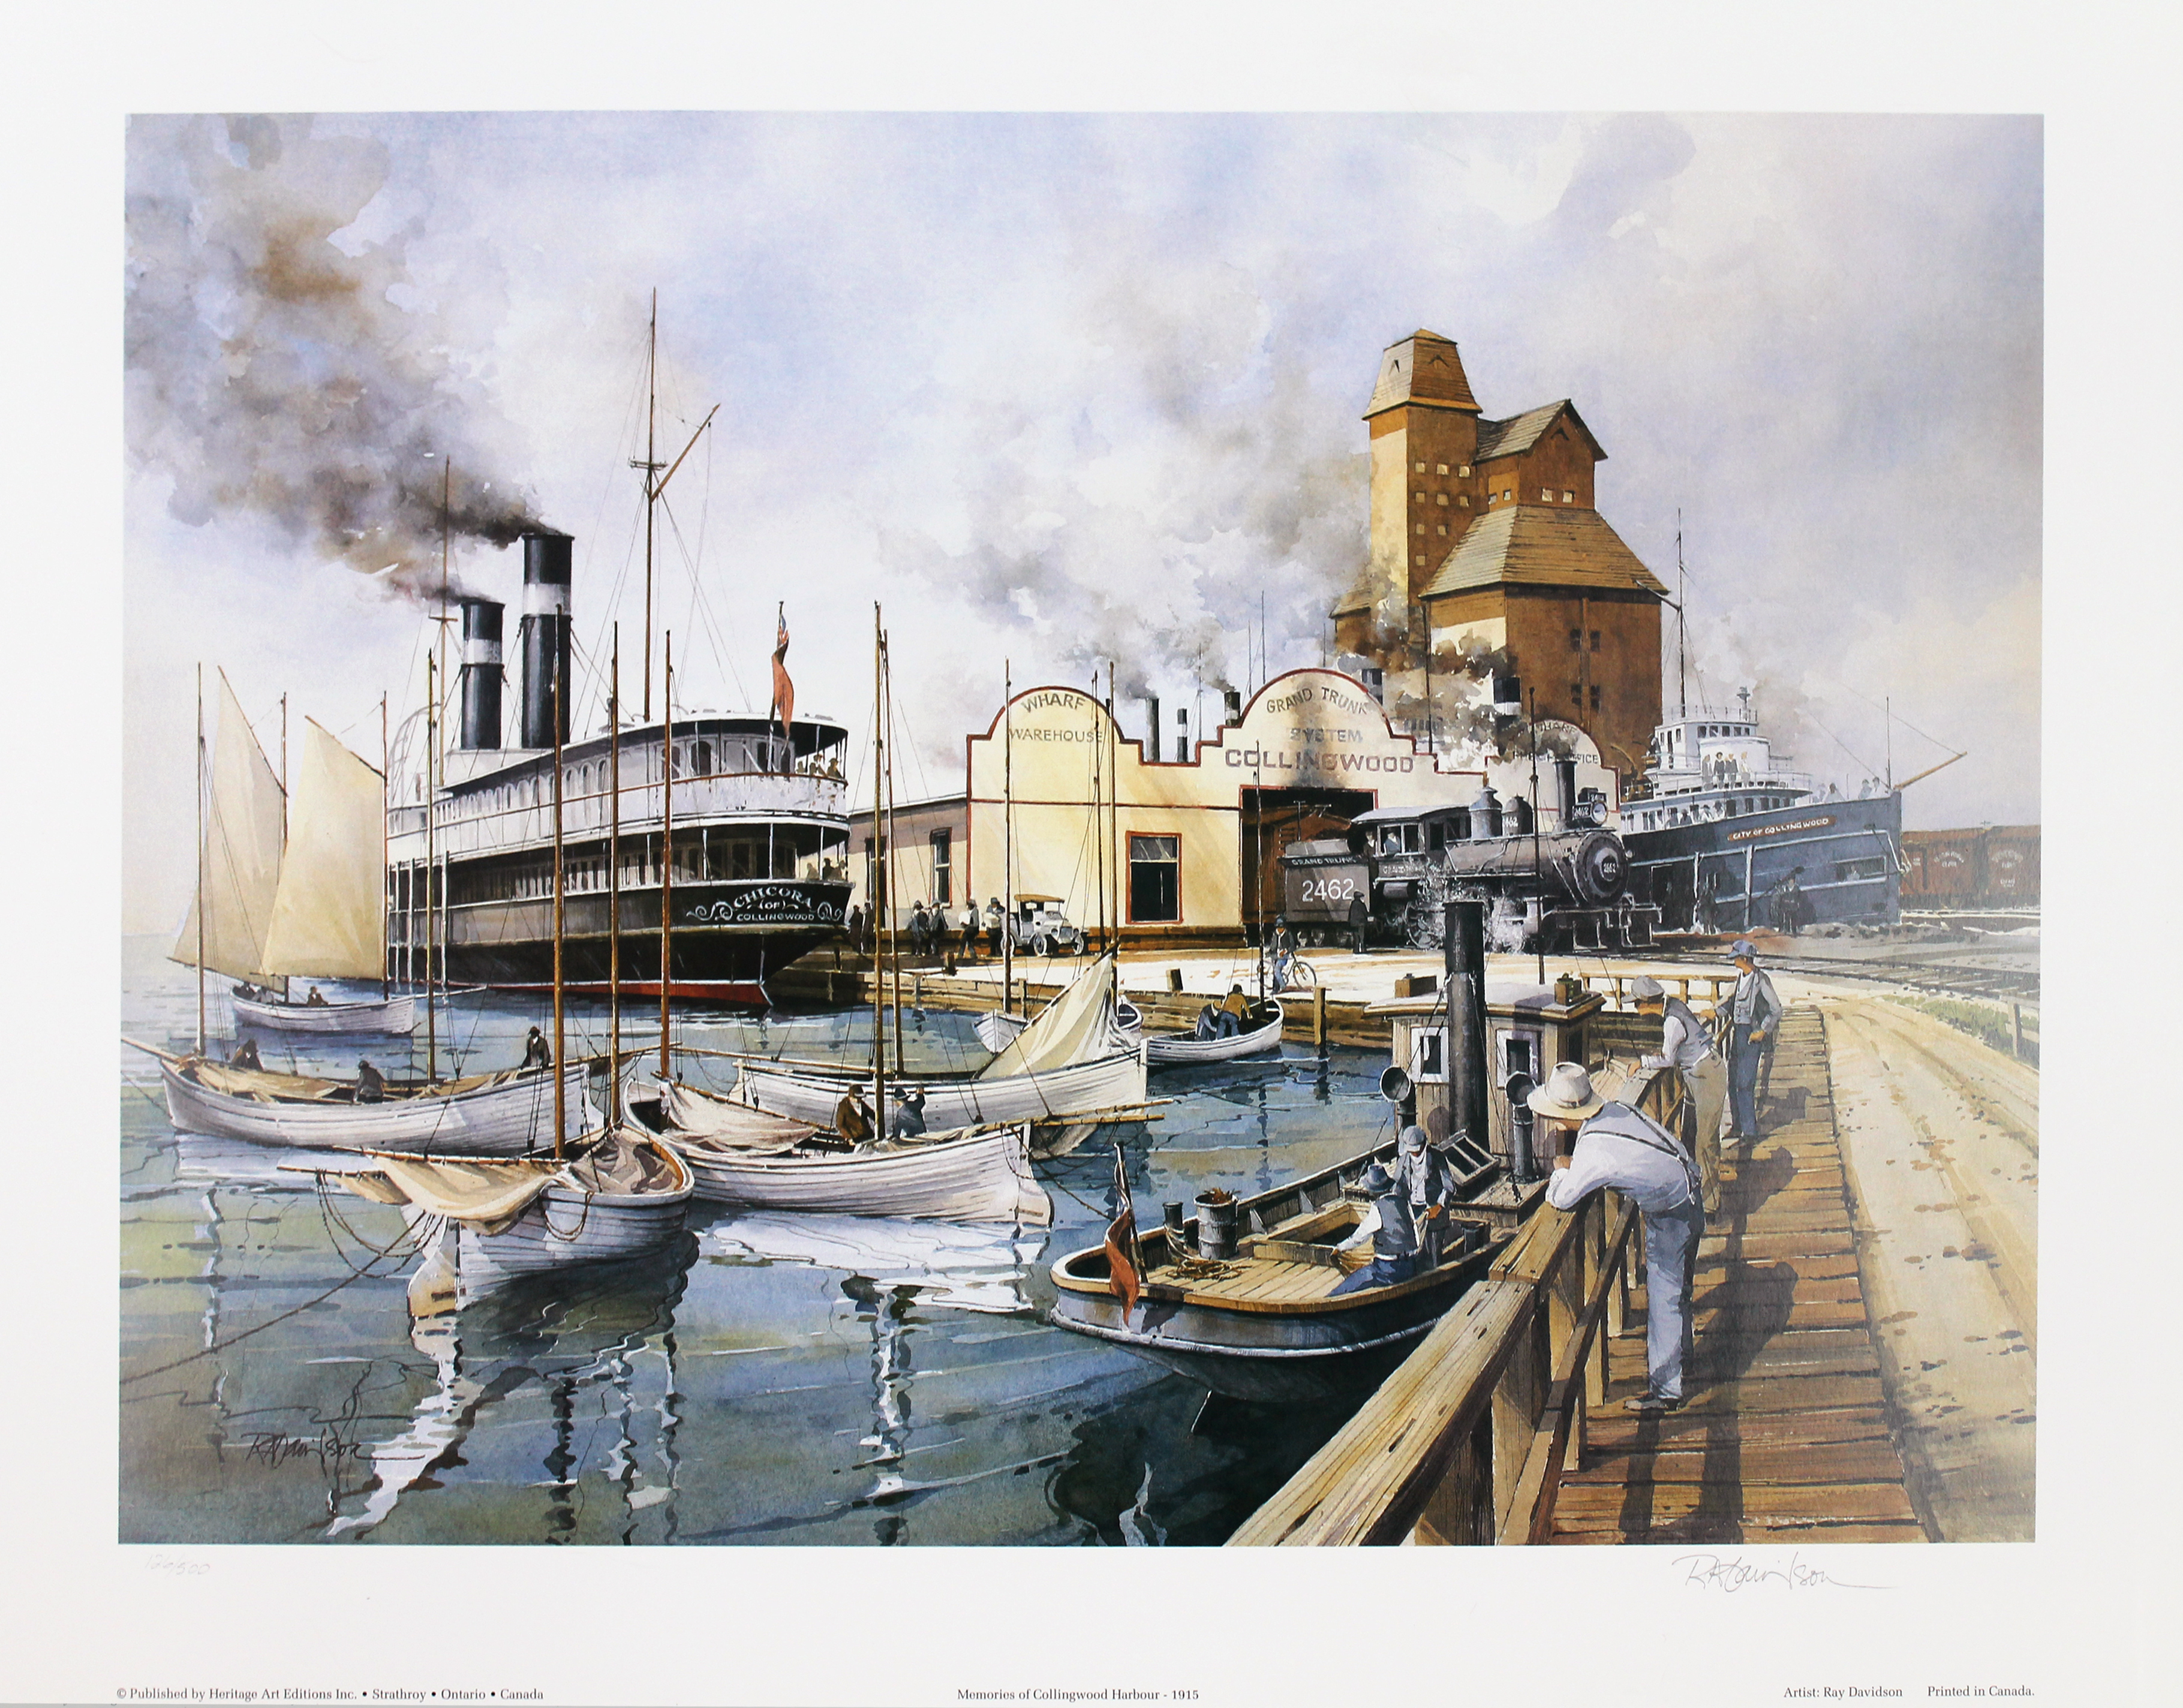 Memories of Collingwood Harbour - GFG Collection